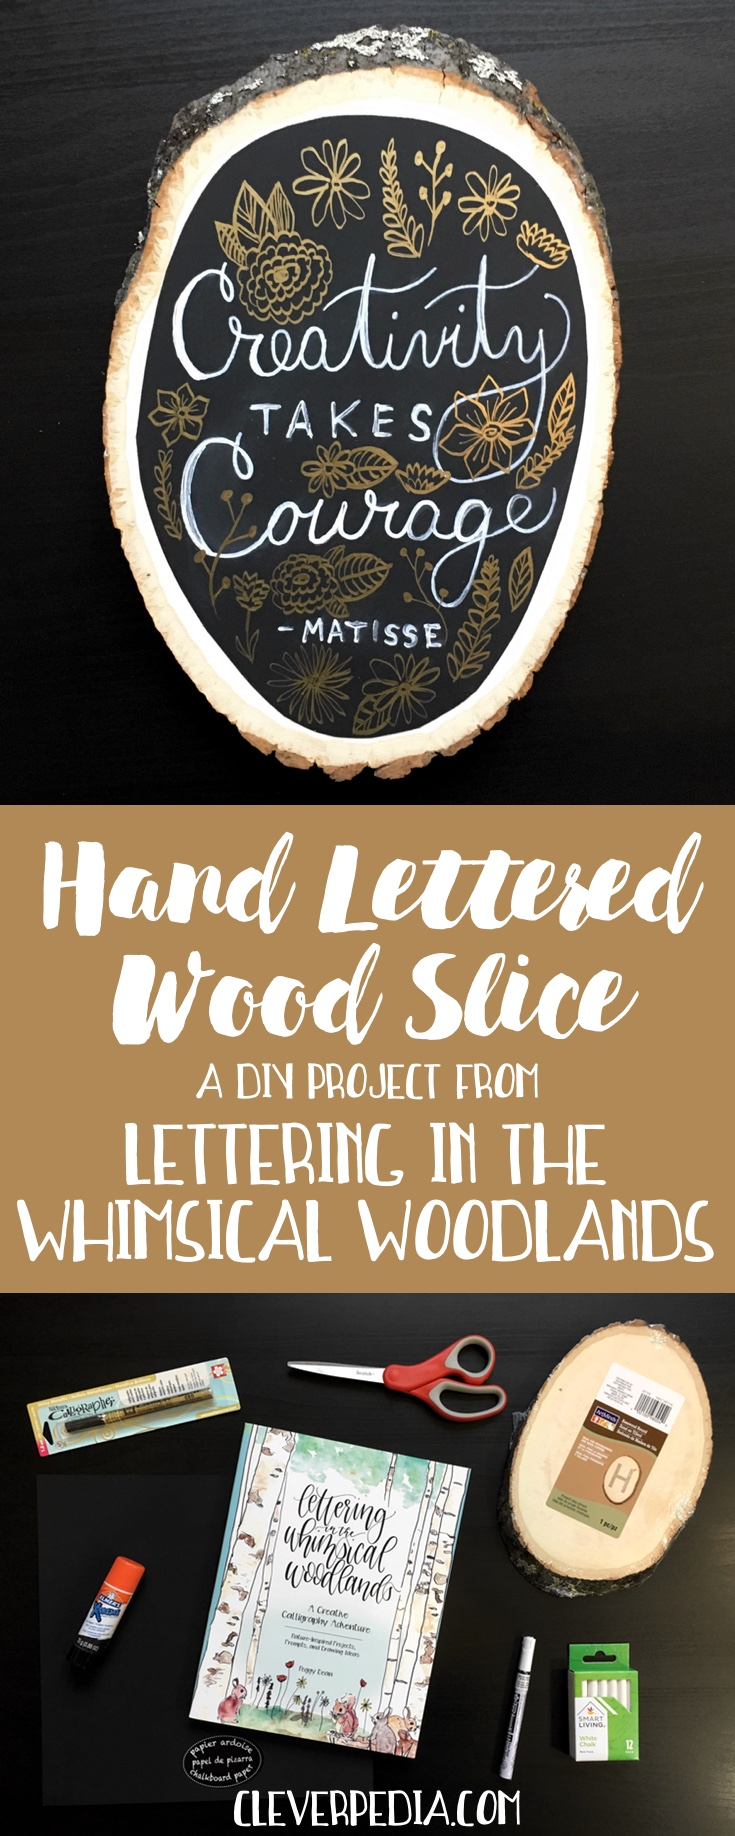 Love this DIY hand lettered wood slice craft project! All you need are a wood slice, chalkboard paper, some paint pens, and your favorite quote! This project is from the book Lettering in the Whimsical Woodlands.